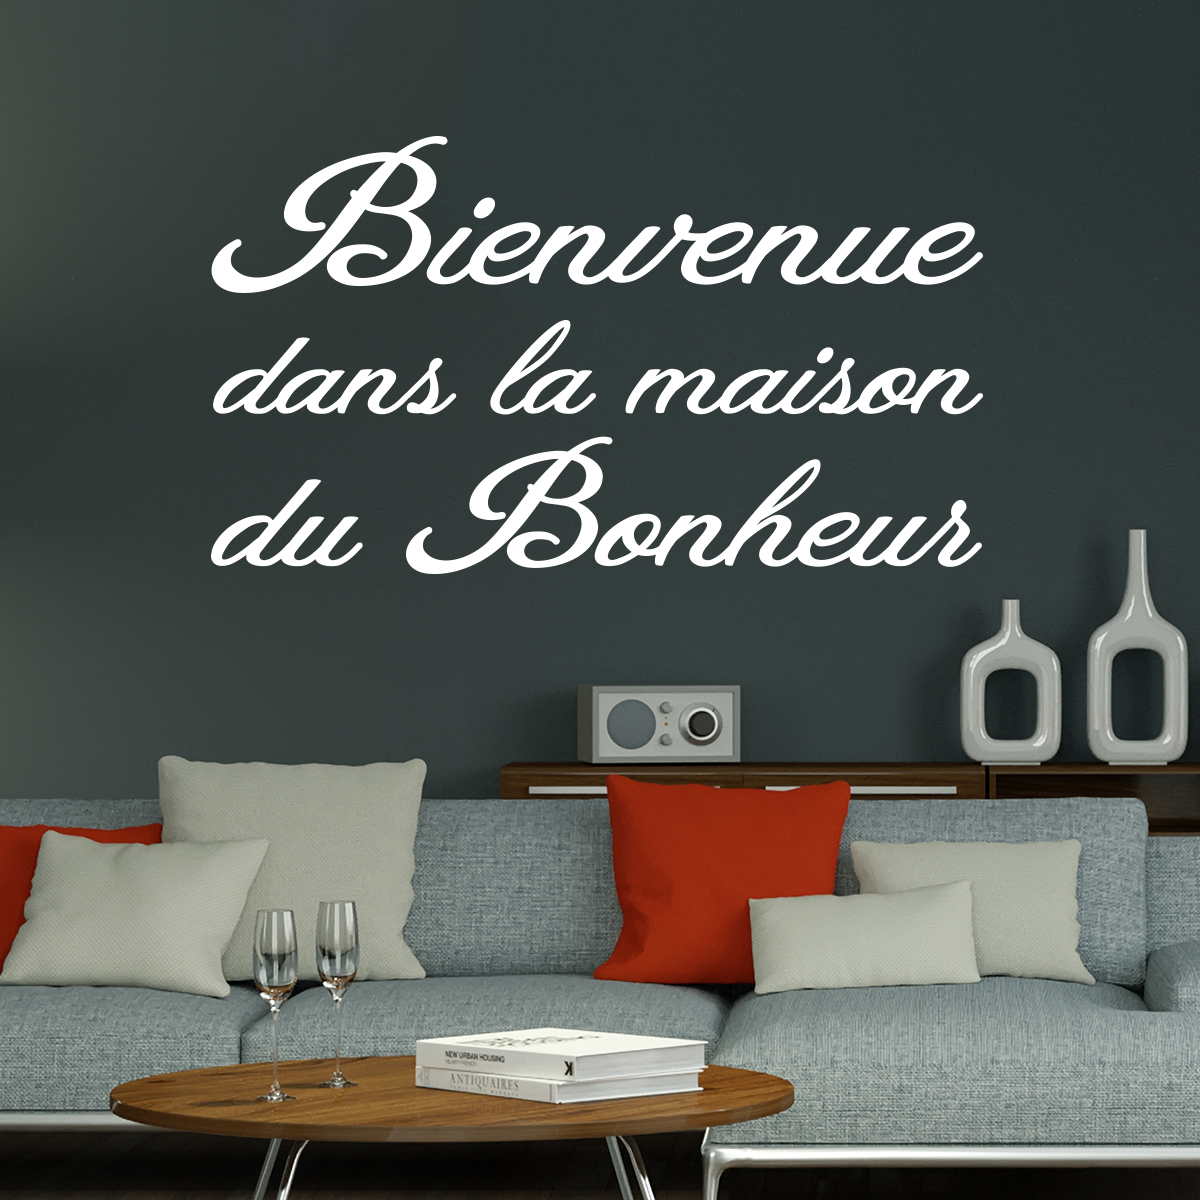 sticker citation bienvenue dans la maison du bonheur stickers citations fran ais ambiance. Black Bedroom Furniture Sets. Home Design Ideas